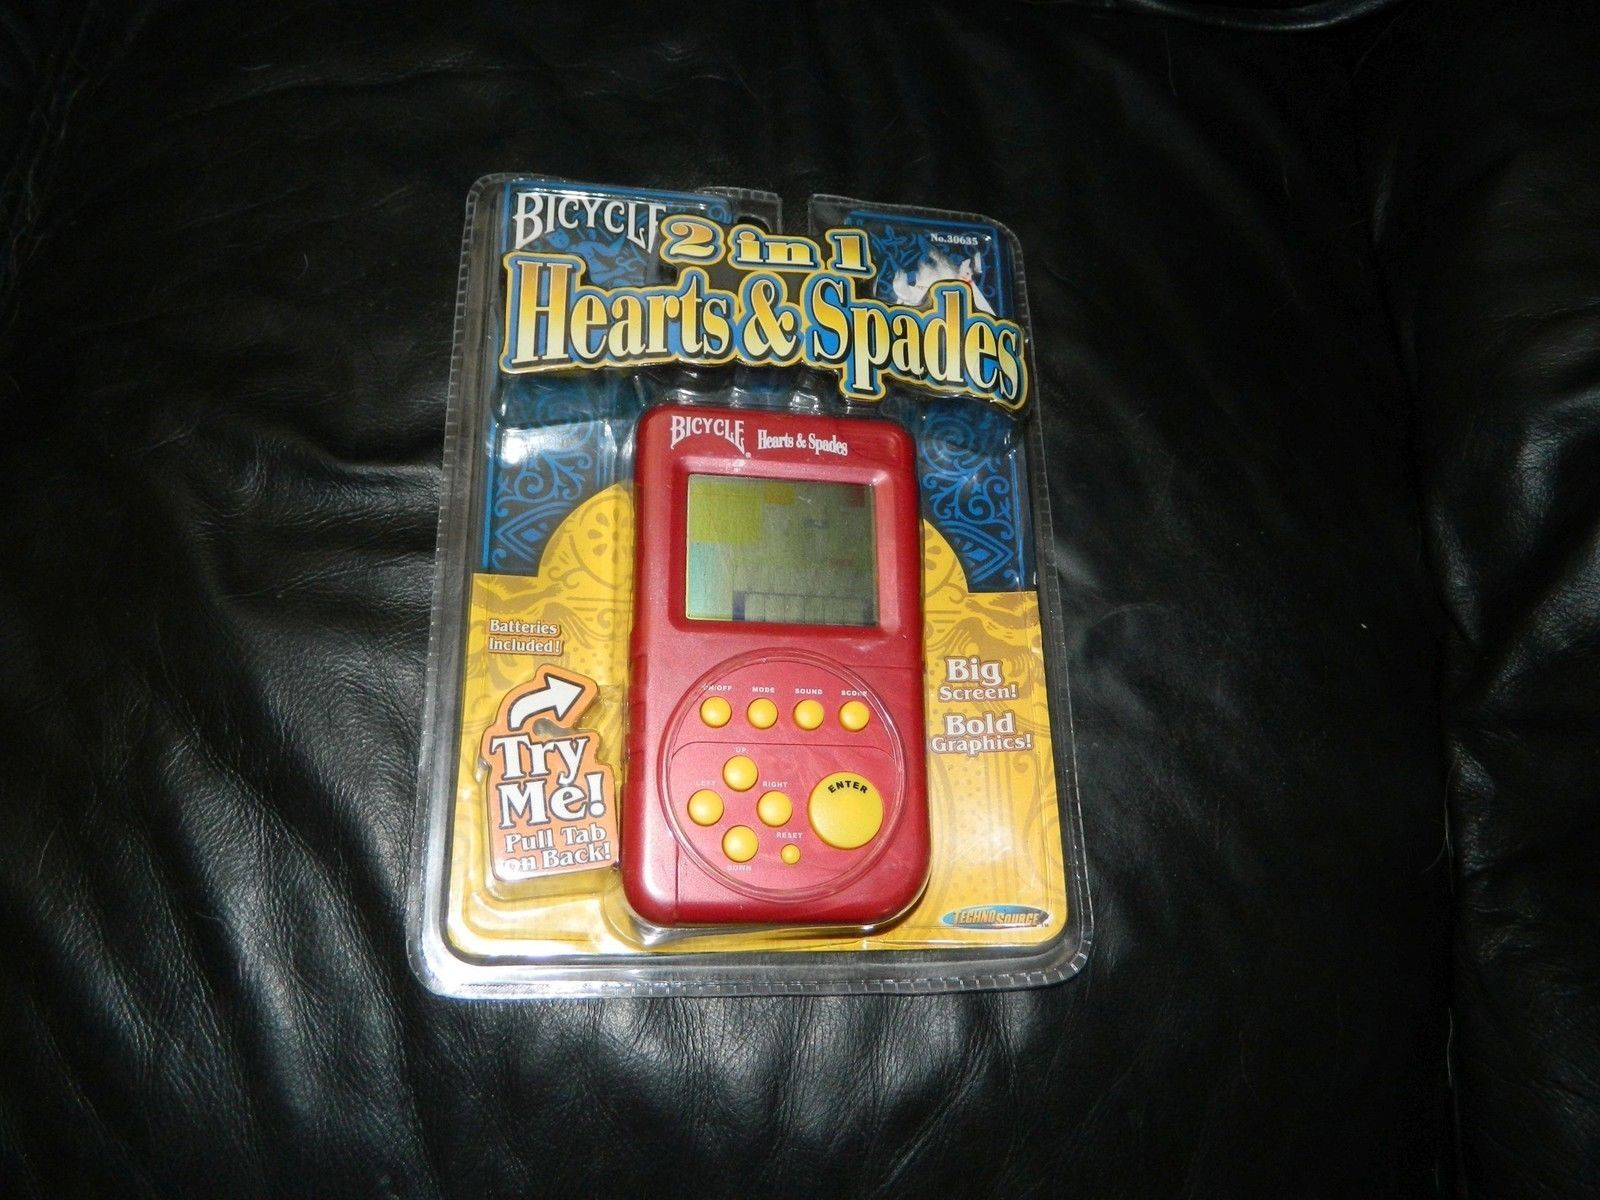 Bicycle 2 in 1 Hearts and Spades Electronic Game 2004 -Sealed - $35.00